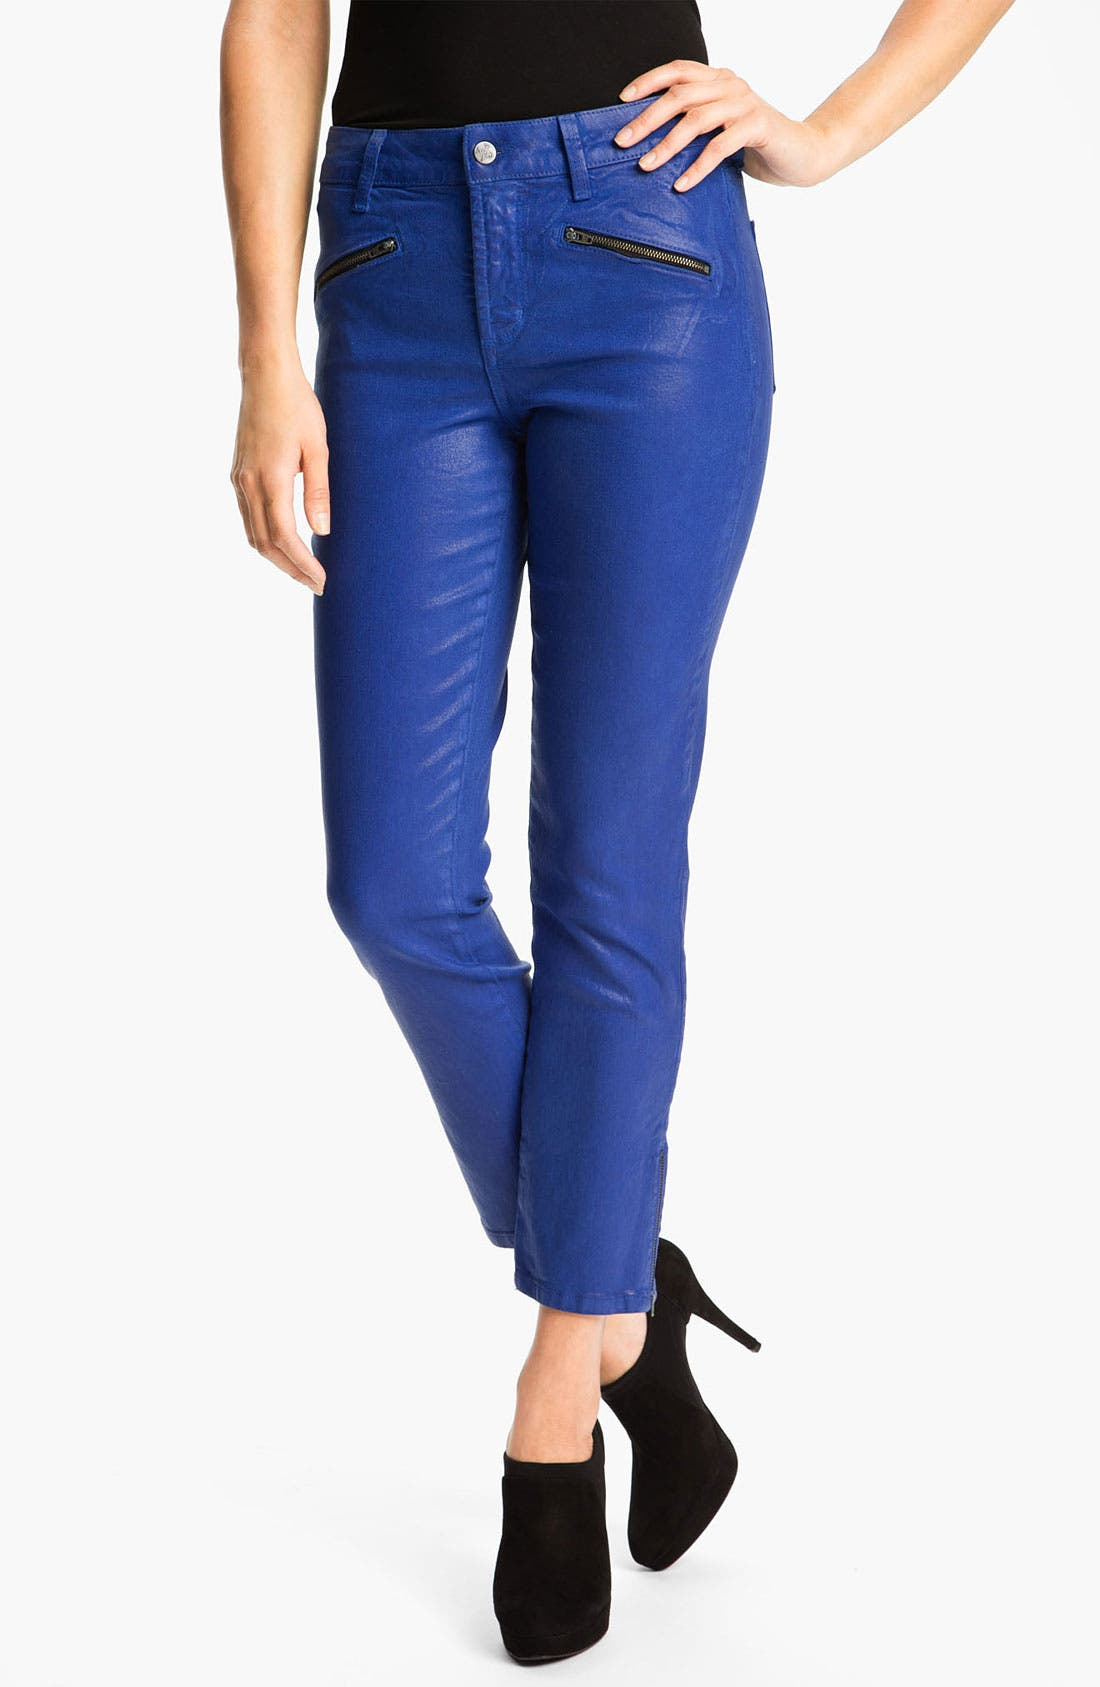 Alternate Image 1 Selected - NYDJ 'Angelina' Coated Zip Ankle Leggings (Petite)